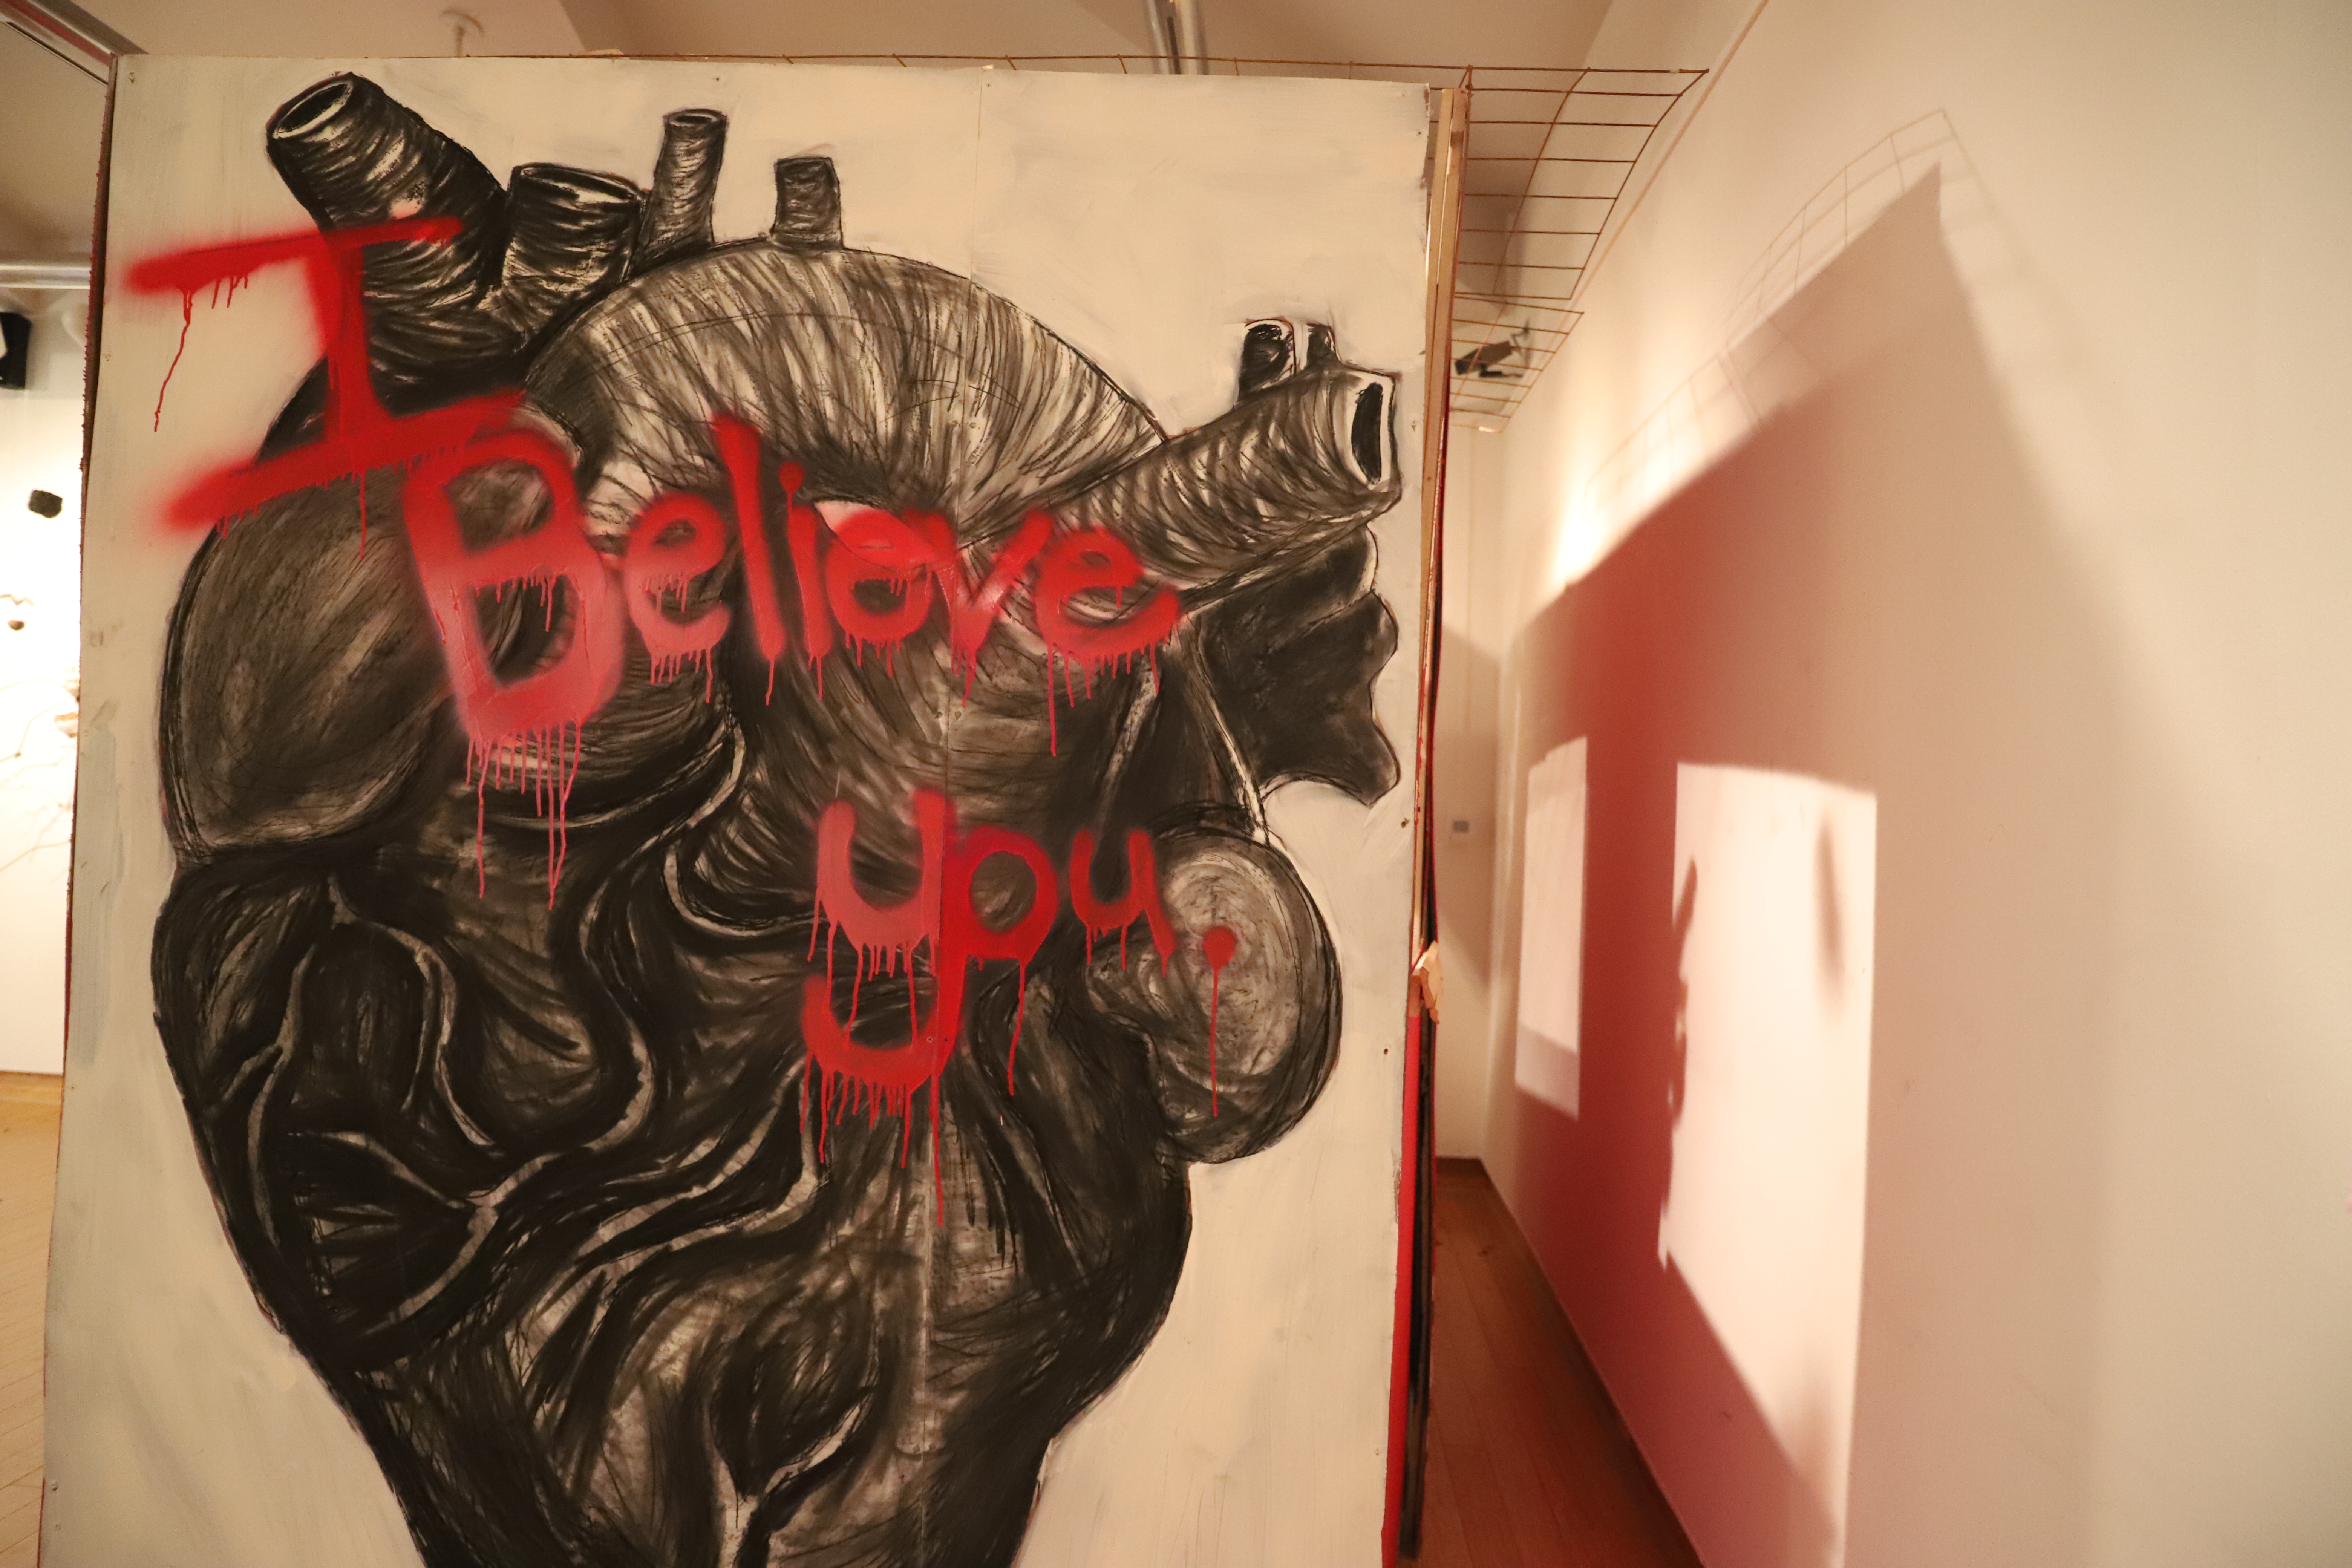 I believe you written in charcoal on a large wall